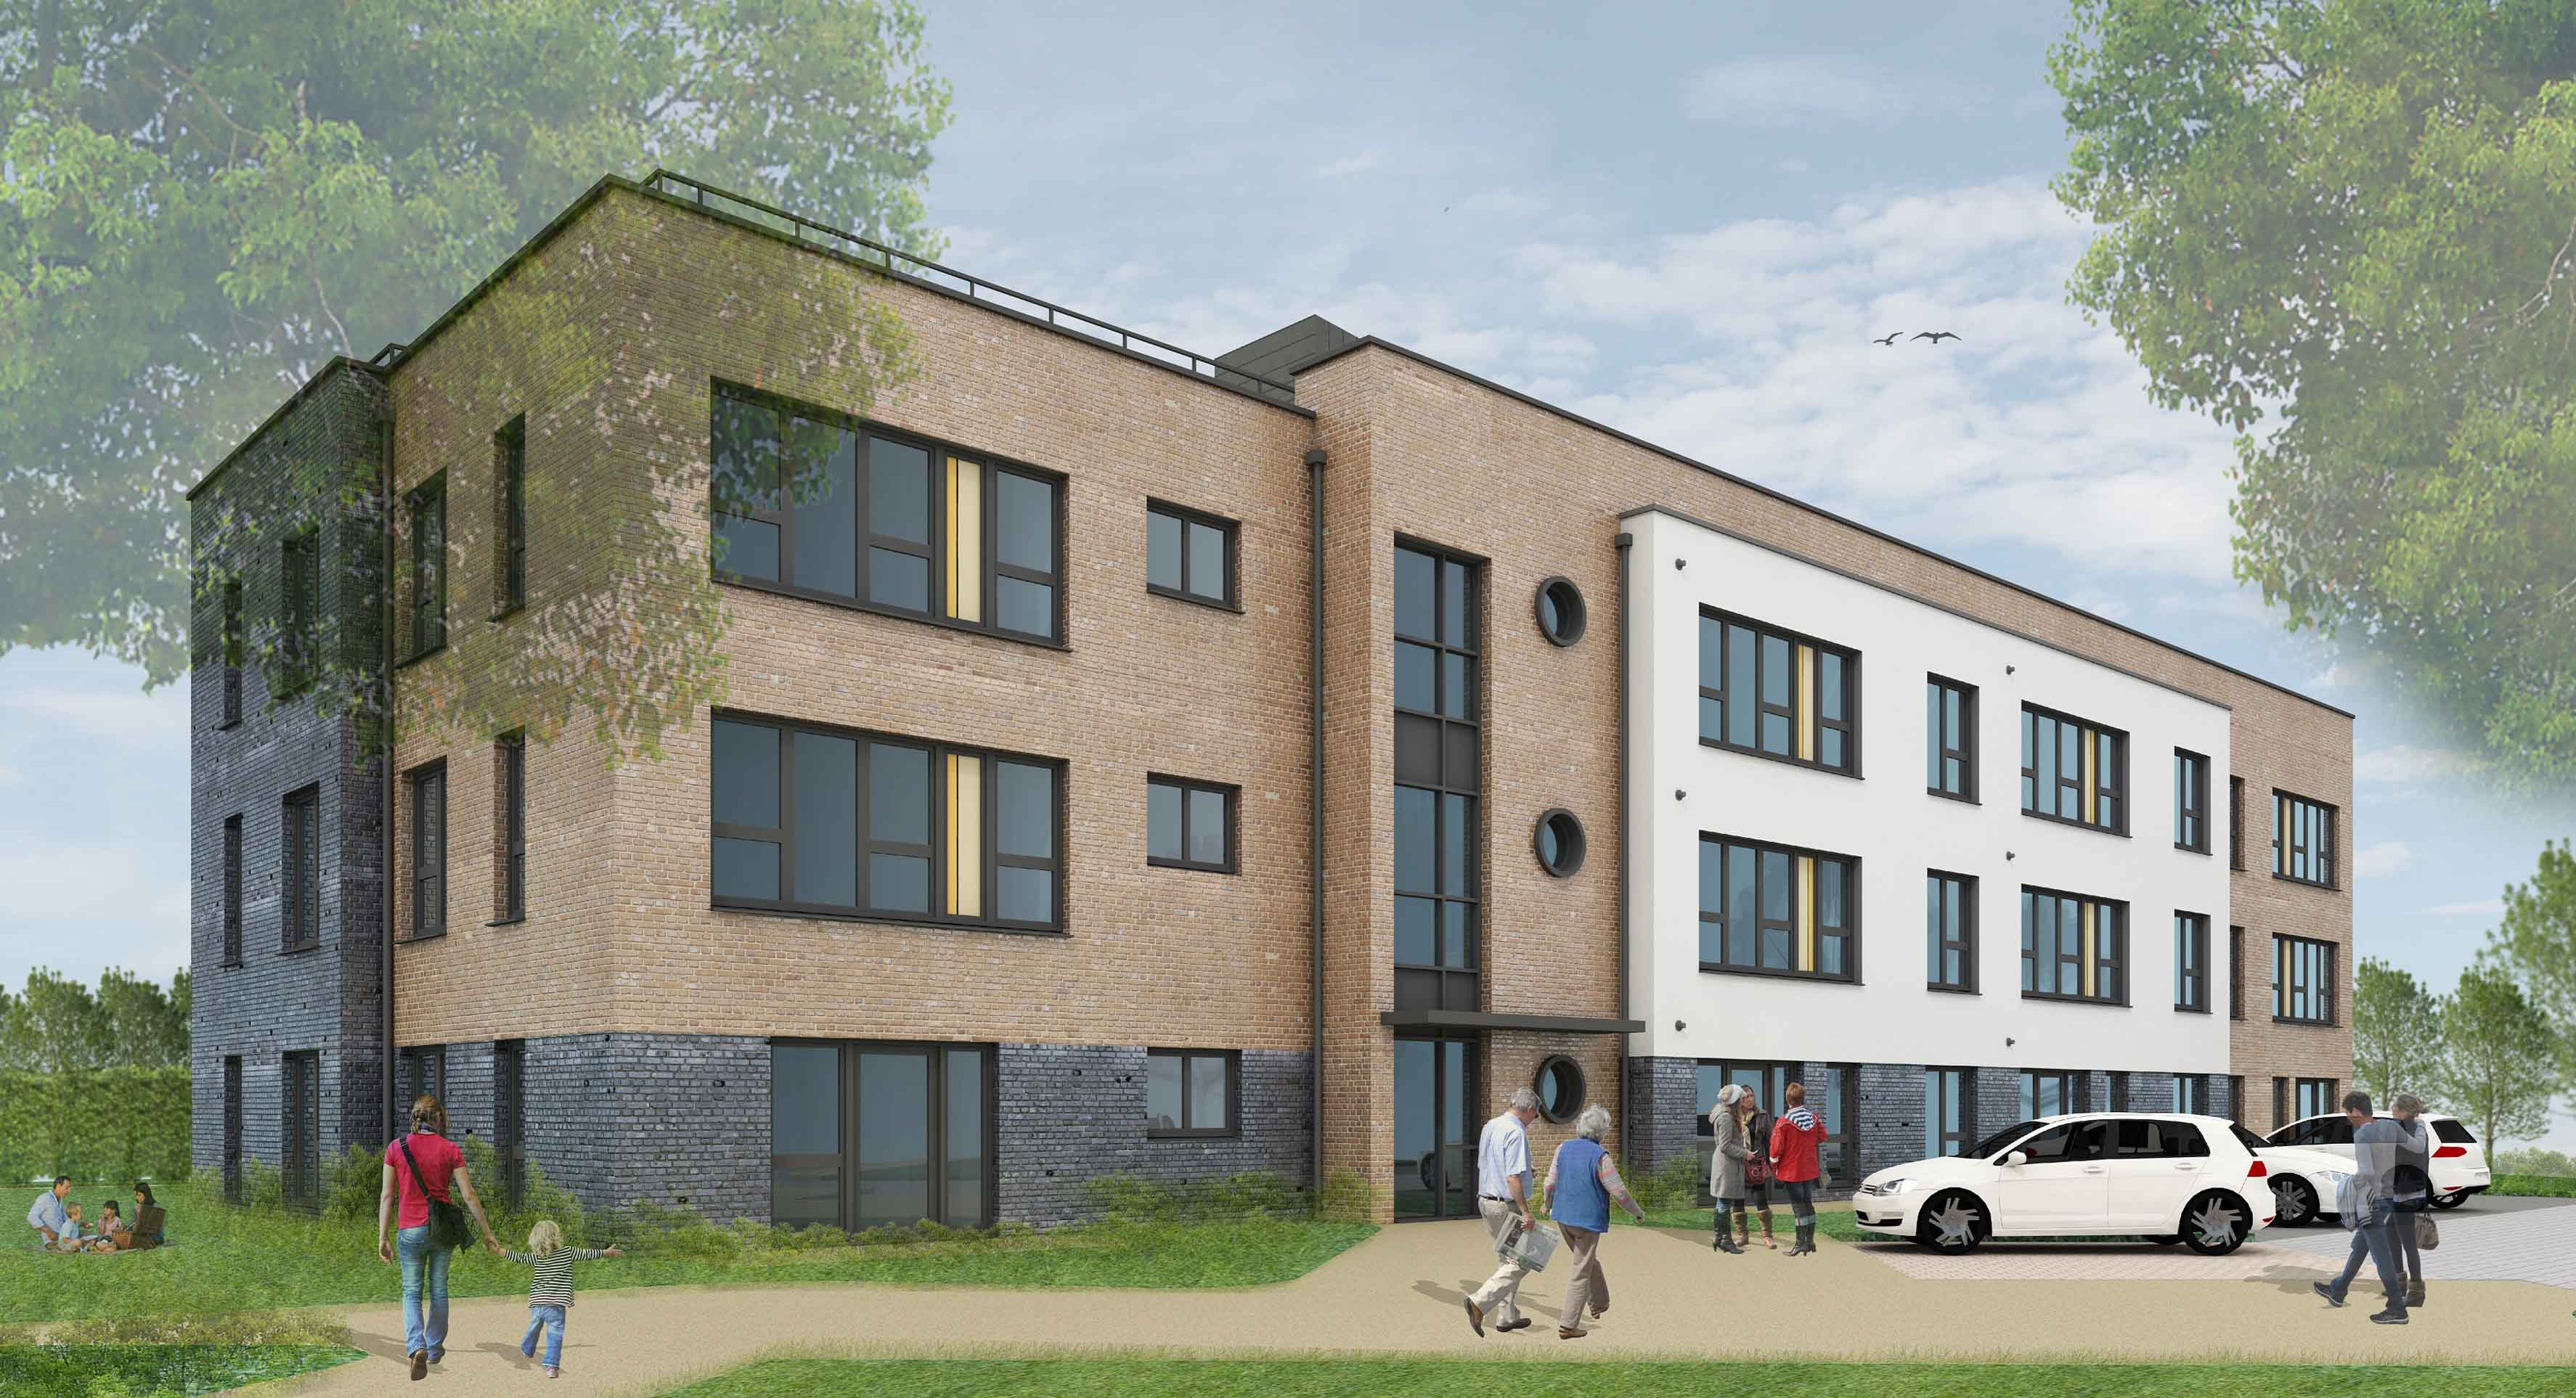 Wavell House Planning Approval, St. Albans